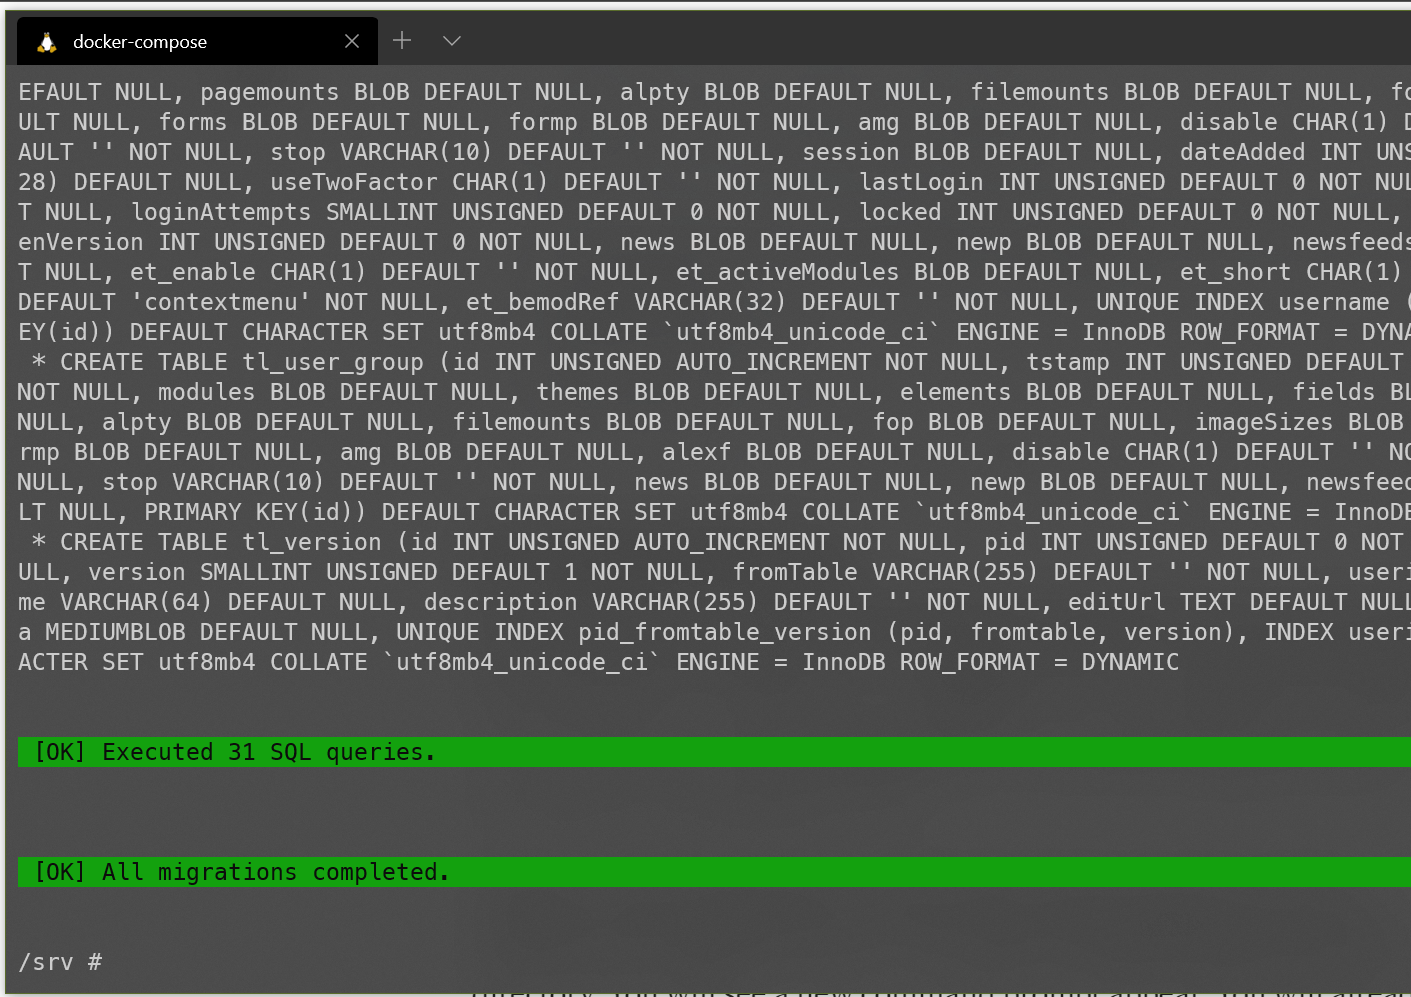 Screenshot showing the completion of the contao:migrate command